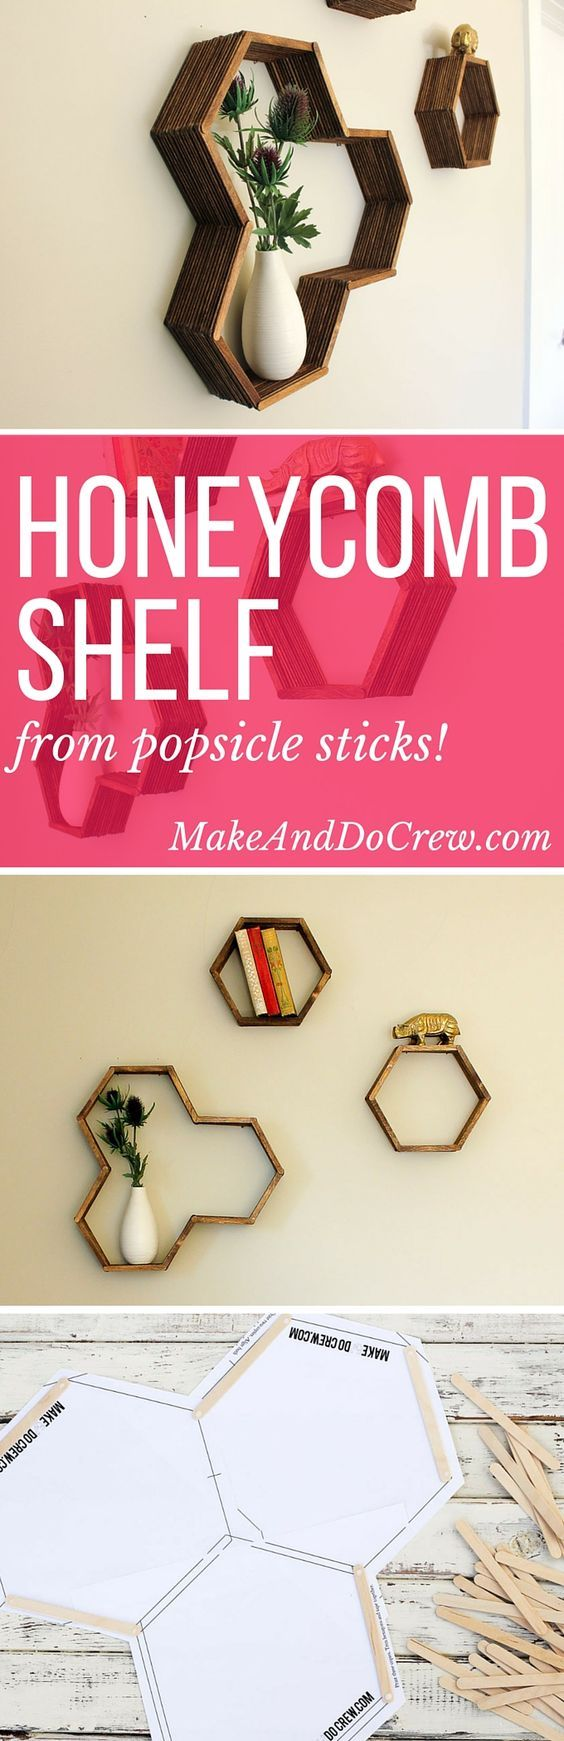 DIY Honeycomb extended shelf from popsicle sticks, Part 2.  Other shapes also on site page.  . . .  ღTrish W ~ http://www.pinterest.com/trishw/  . . .